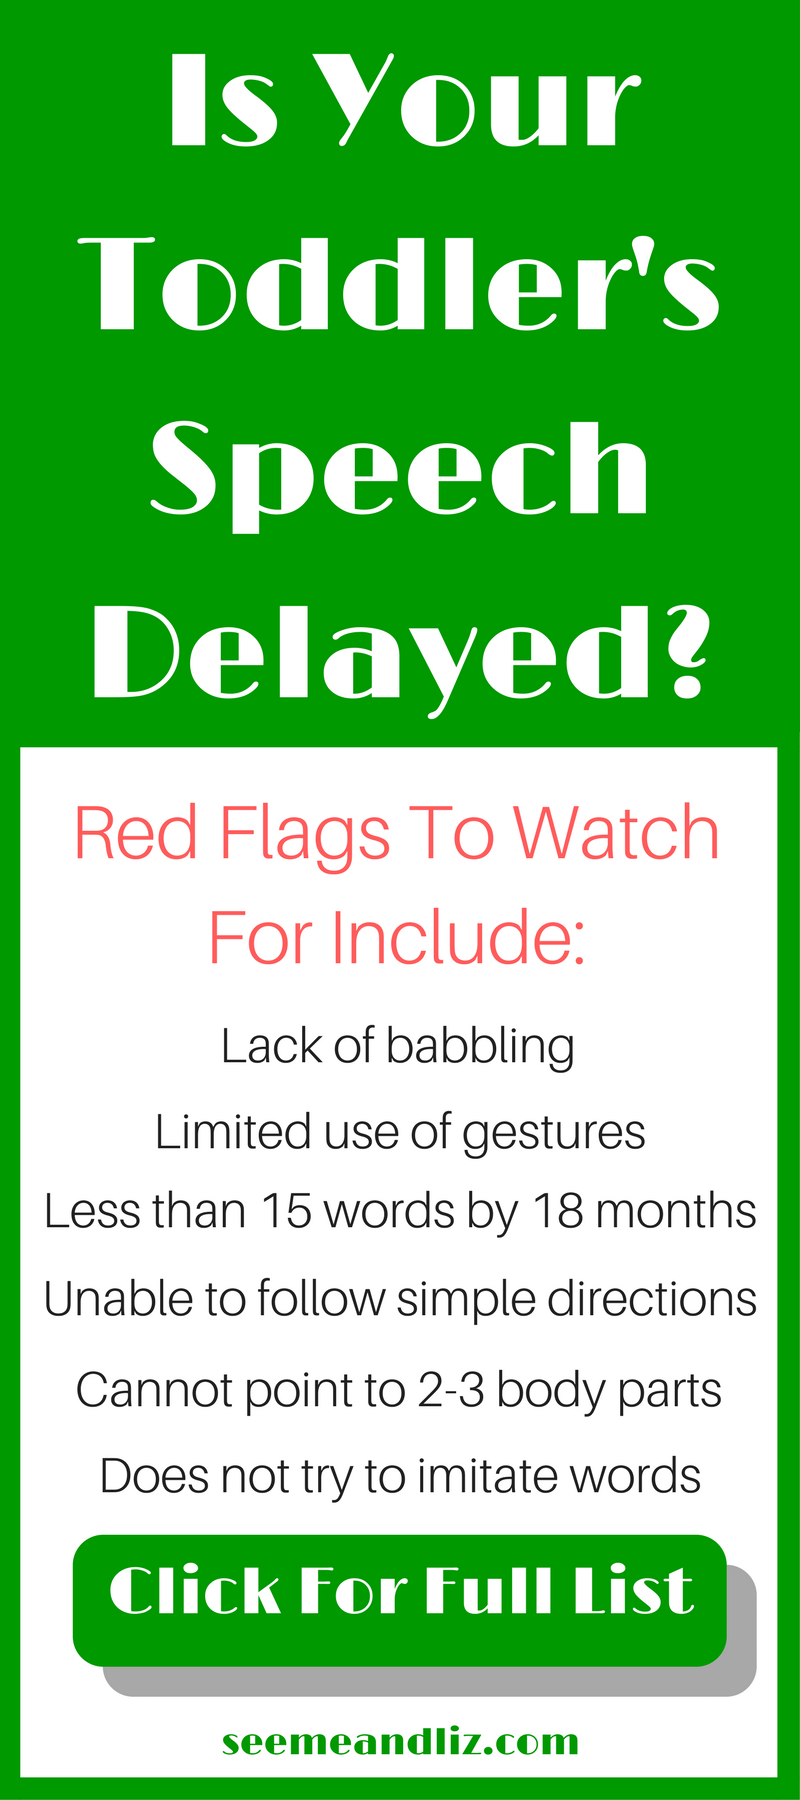 Are You Concerned Your Toddler May Have A Speech/Language Delay? Click for all 19 red flags to watch for!